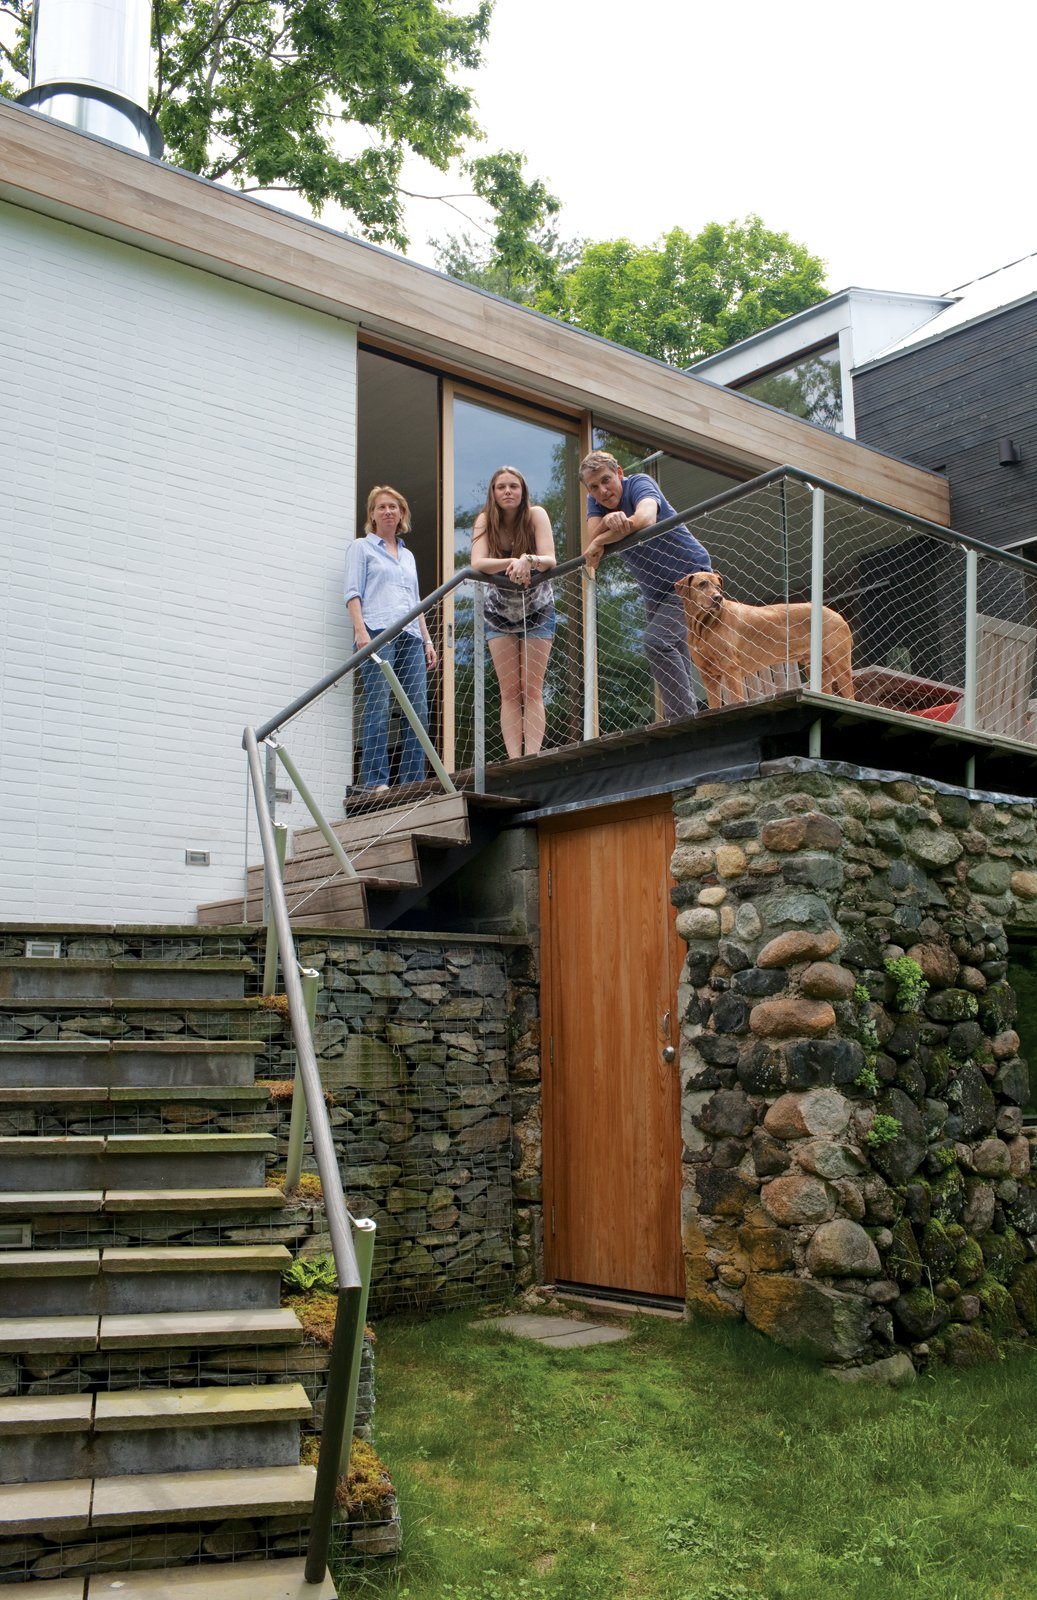 The original stone wall was the home's architectural polestar.